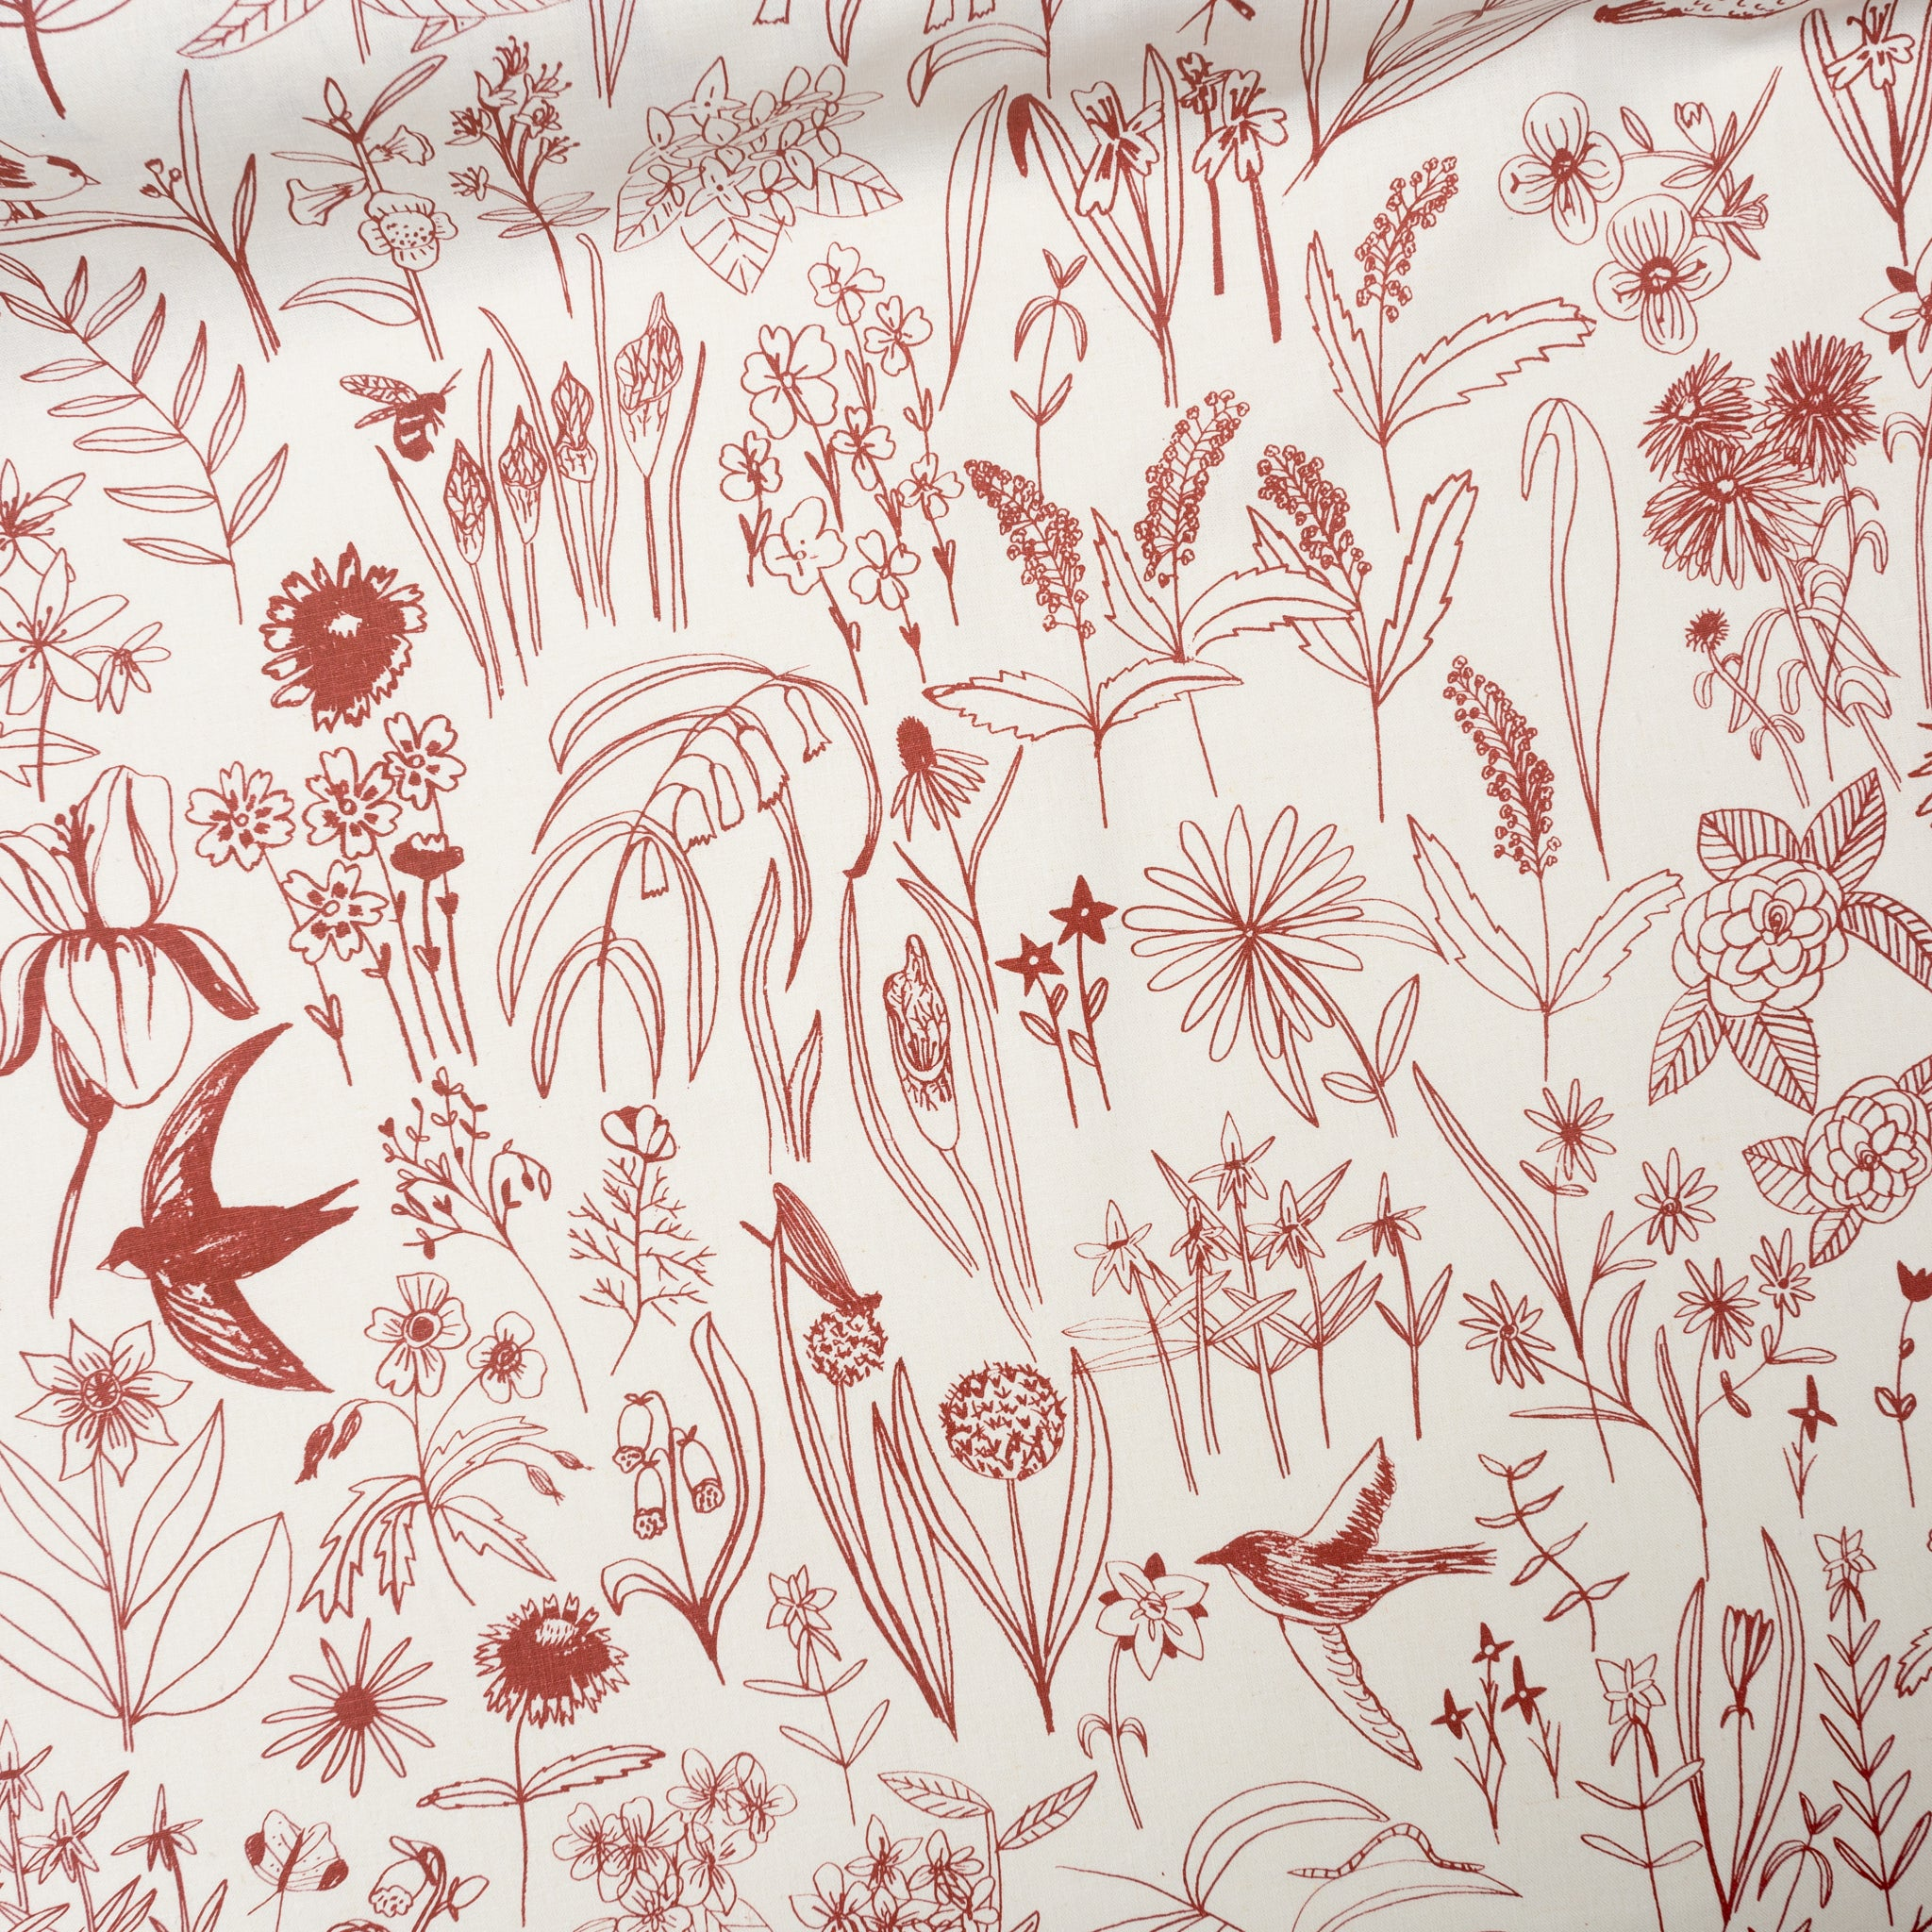 Screen printed fabric yardage of Meadowlark in Brick